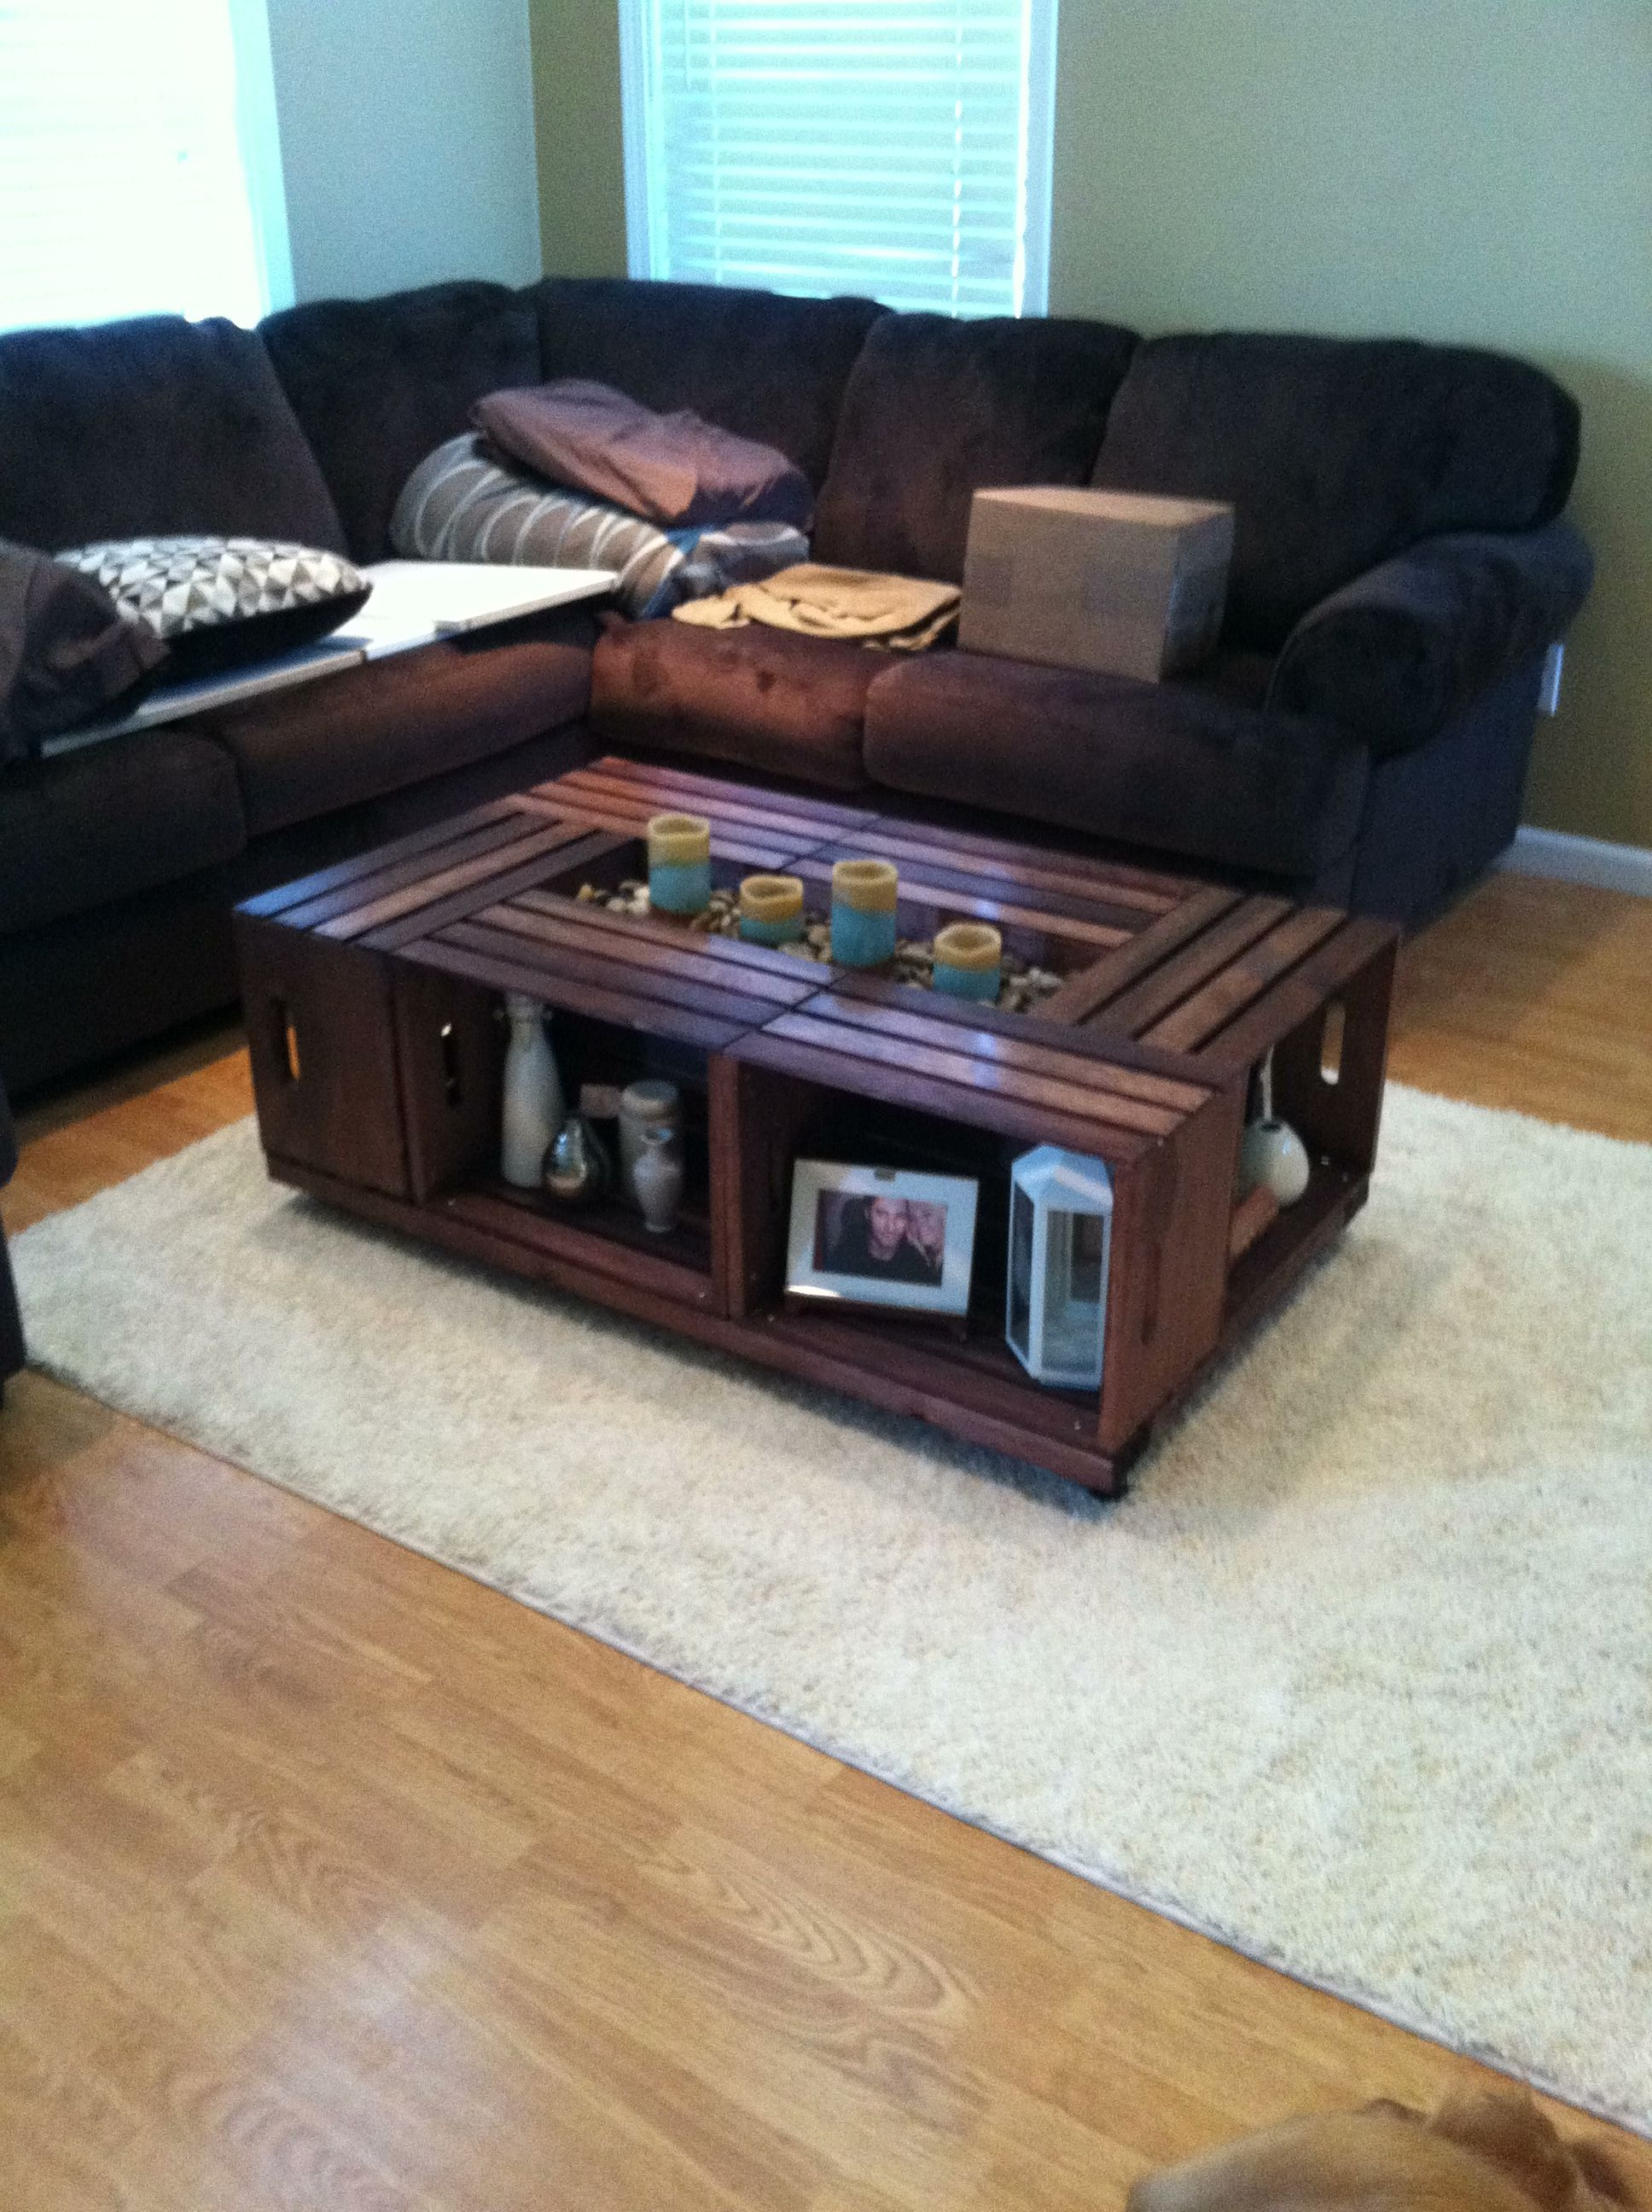 Superieur Did The Pinterest Crate Coffee Table With A Twist, Instead Of Using Only 4  Crates I Used 6 So It Wasnu0027t So Small Against My Huge Couch, Love How It  Turned ...